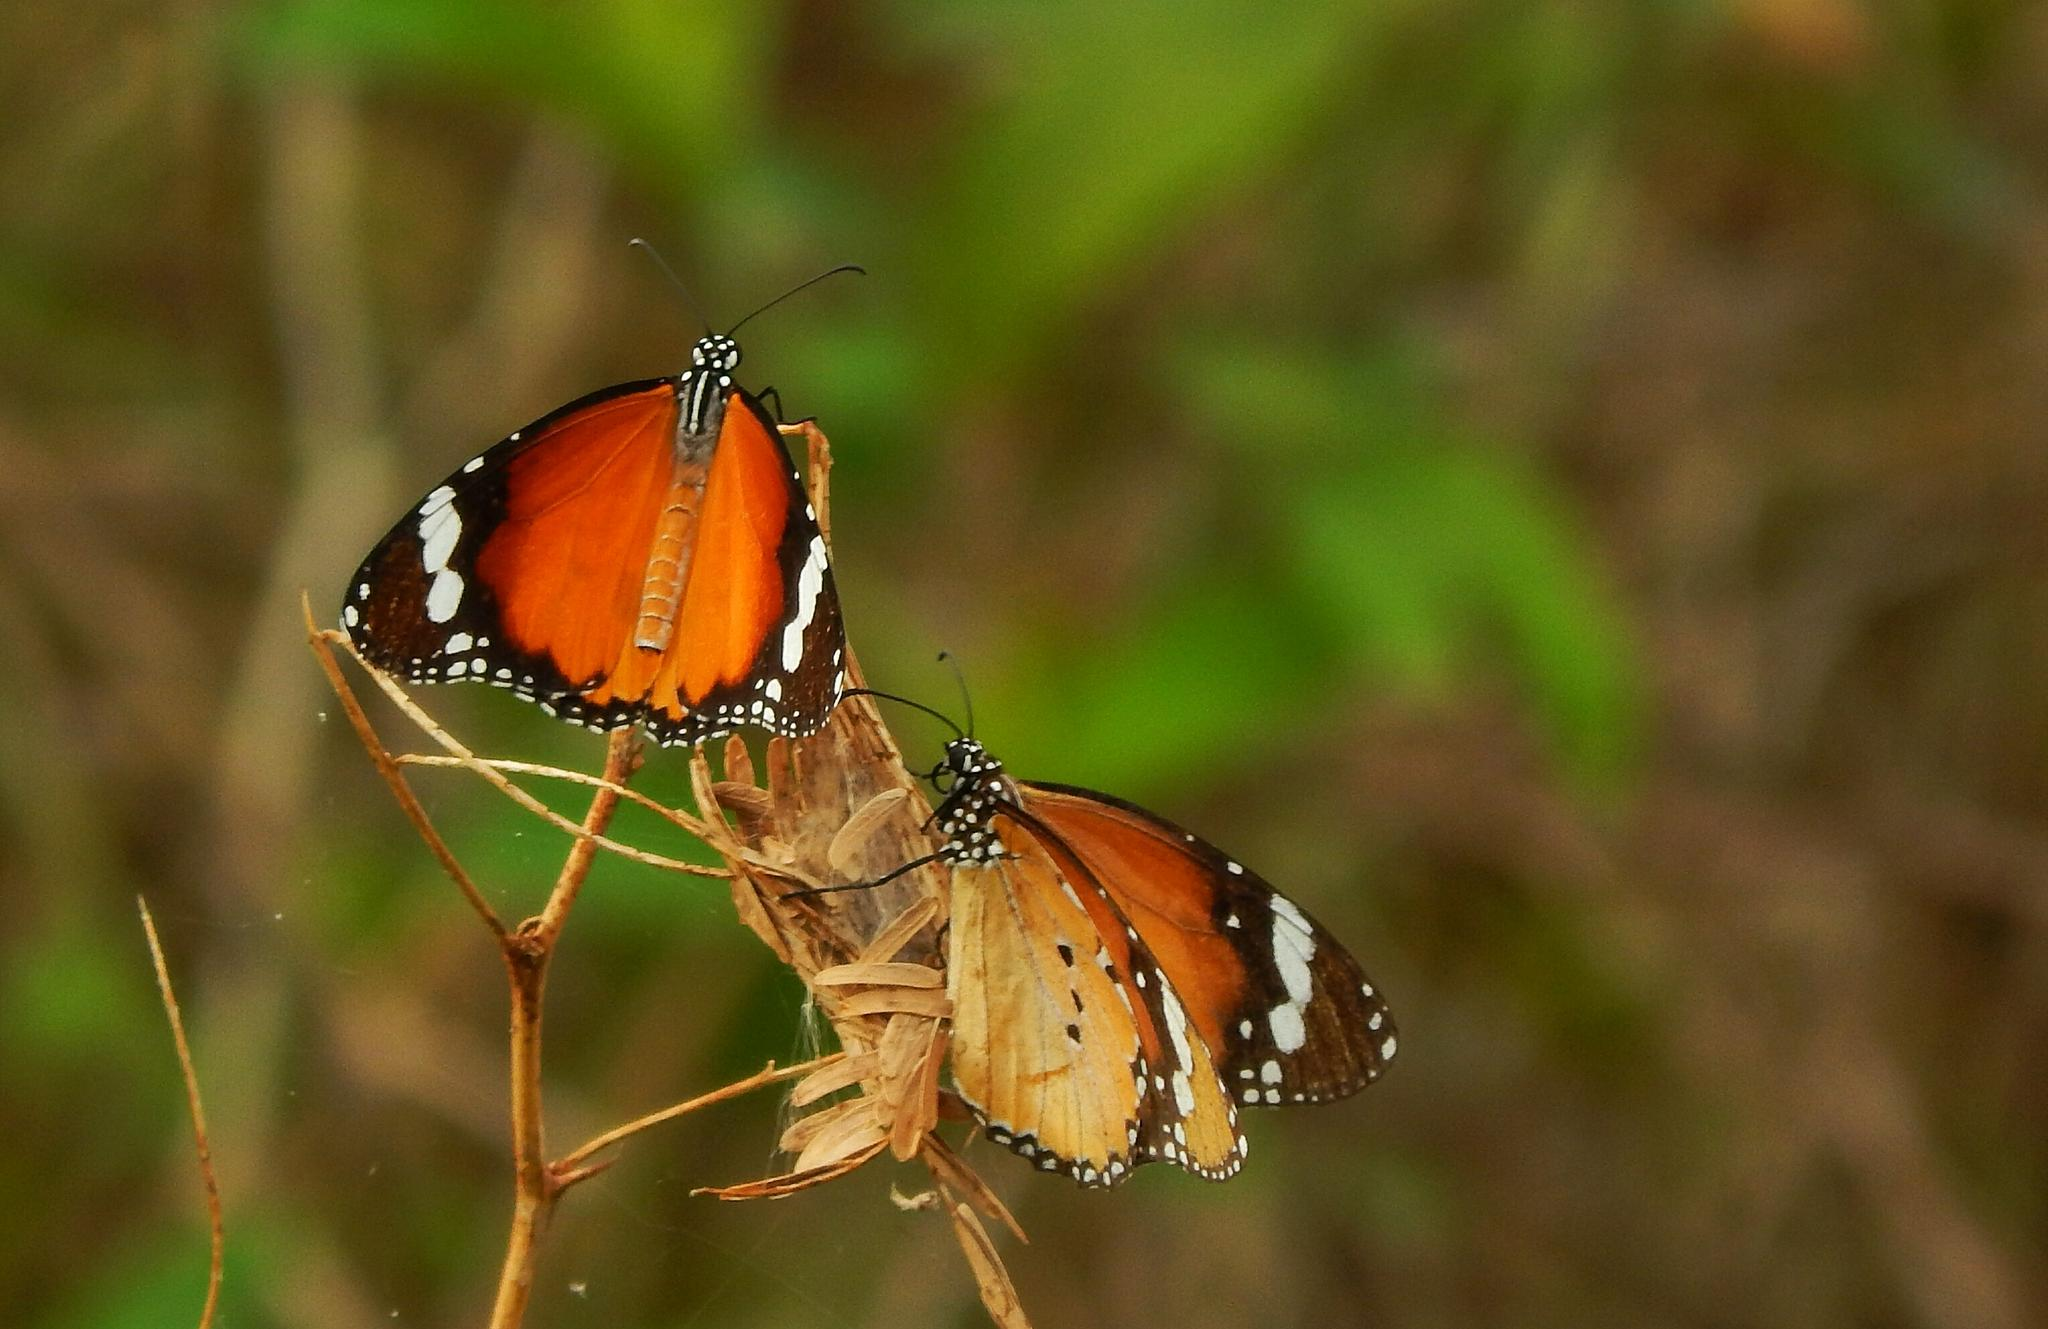 two little beauties by Aritra ghosh